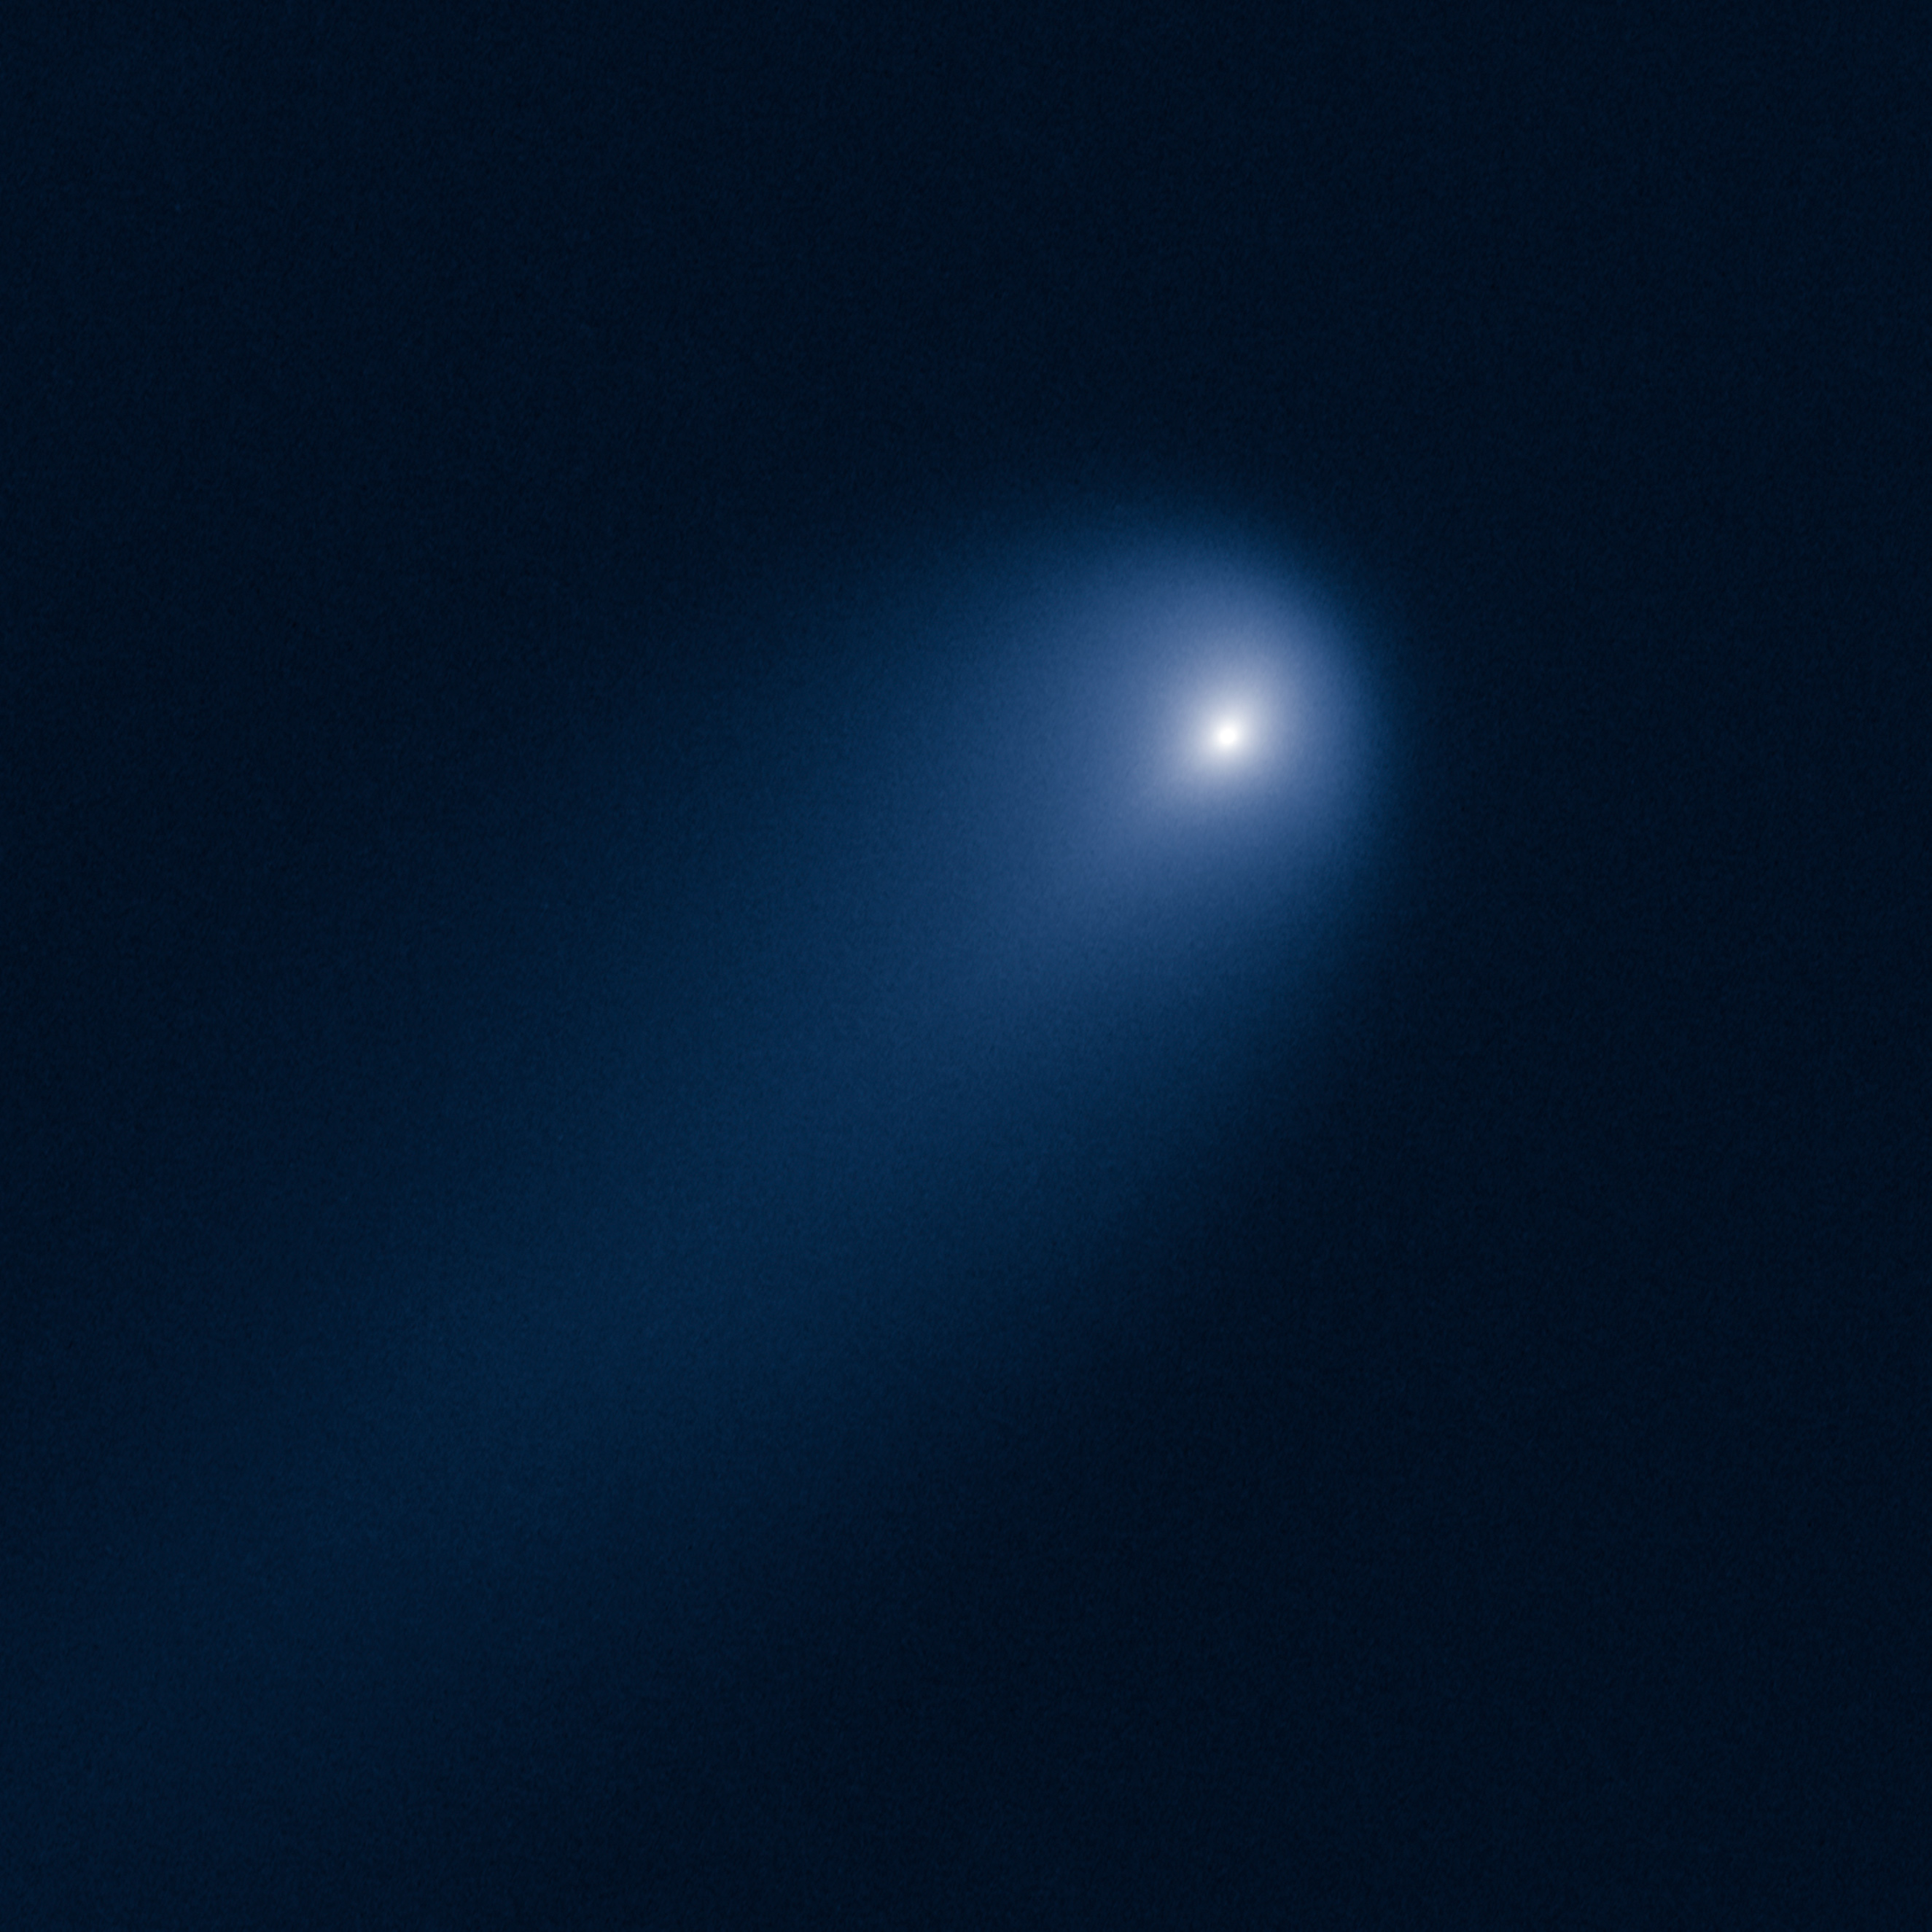 <strong>Comet Ison</strong>:                                   Hubble captured this image of Comet C/2012 S1 (ISON) on April 10, when the comet was at a distance of 386 million miles from the Sun (and 394 million miles from Earth). Preliminary measurements from the Hubble images suggest that the nucleus of ISON is no larger than three or four miles across.  The comet's dusty coma, or head of the comet, is approximately 3,100 miles across, or 1.2 times the width of Australia. A dust tail extends more than 57,000 miles, far beyond Hubble's field of view.                                   <i>Image released on April 23, 2013.</i>